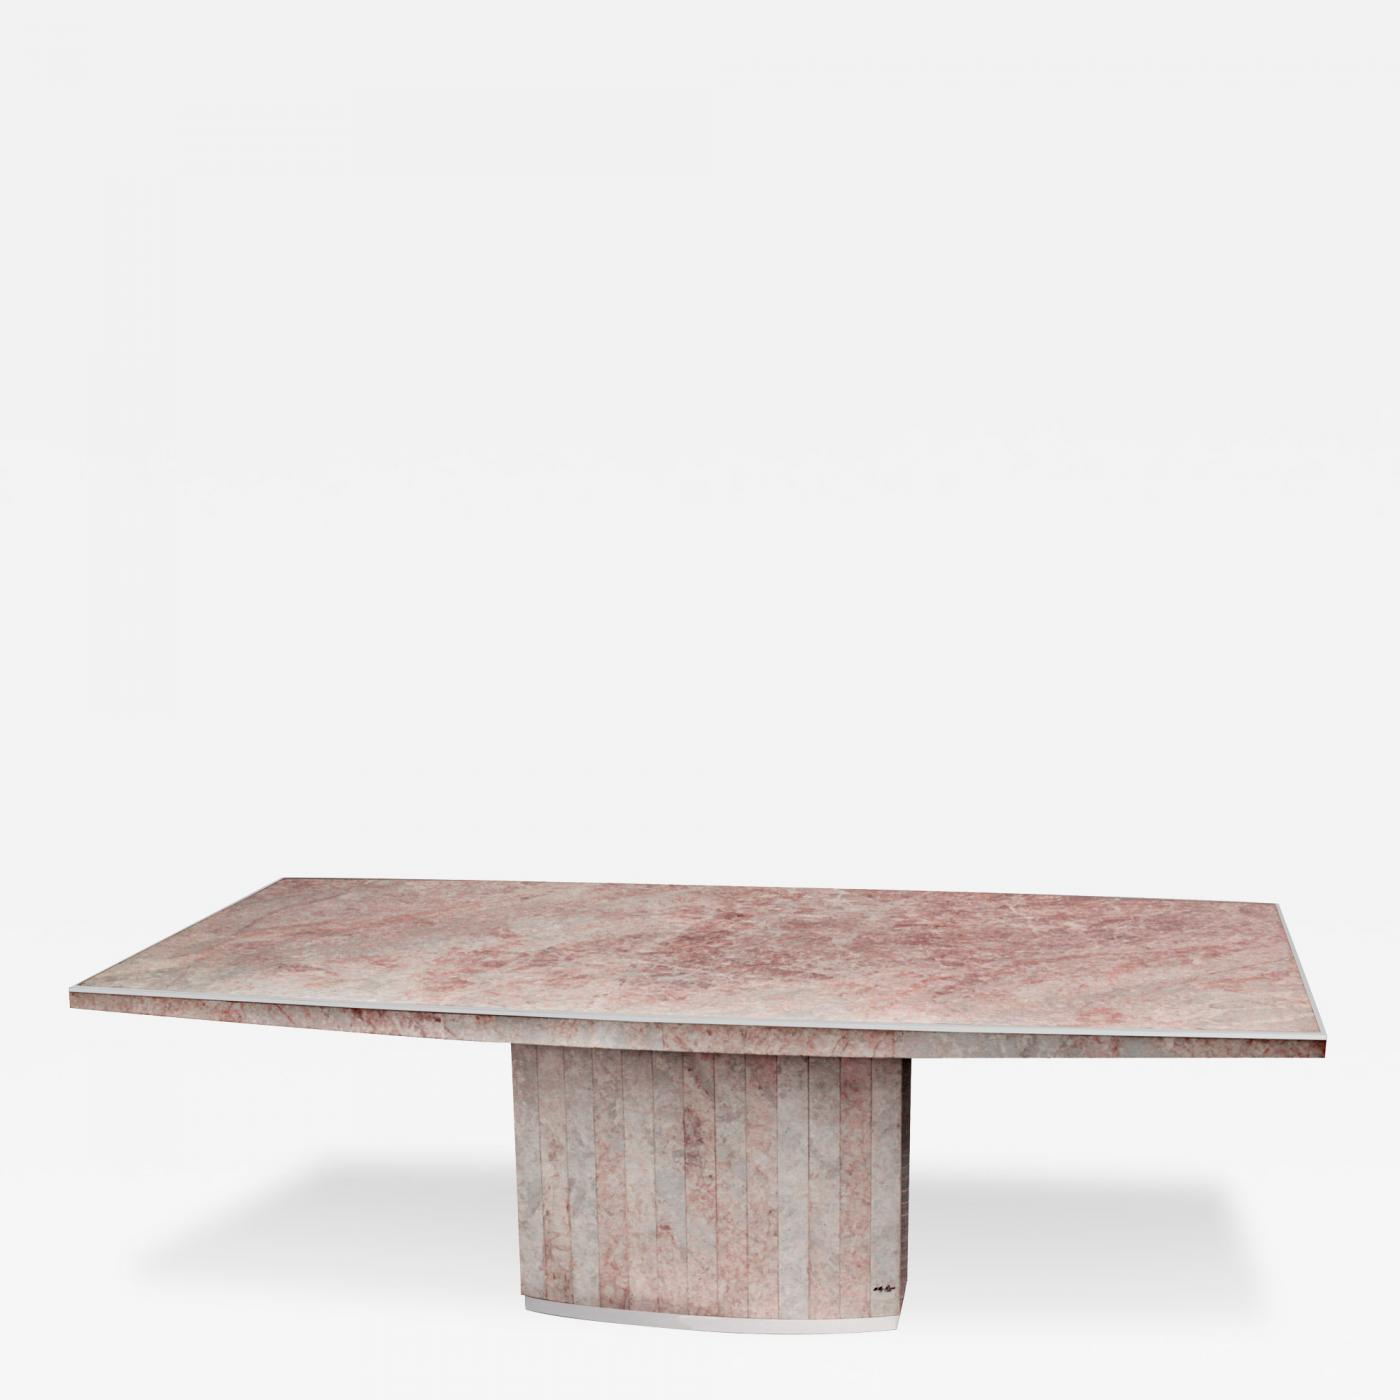 Willy rizzo dining table with marble slab top by willy rizzo for Table willy rizzo